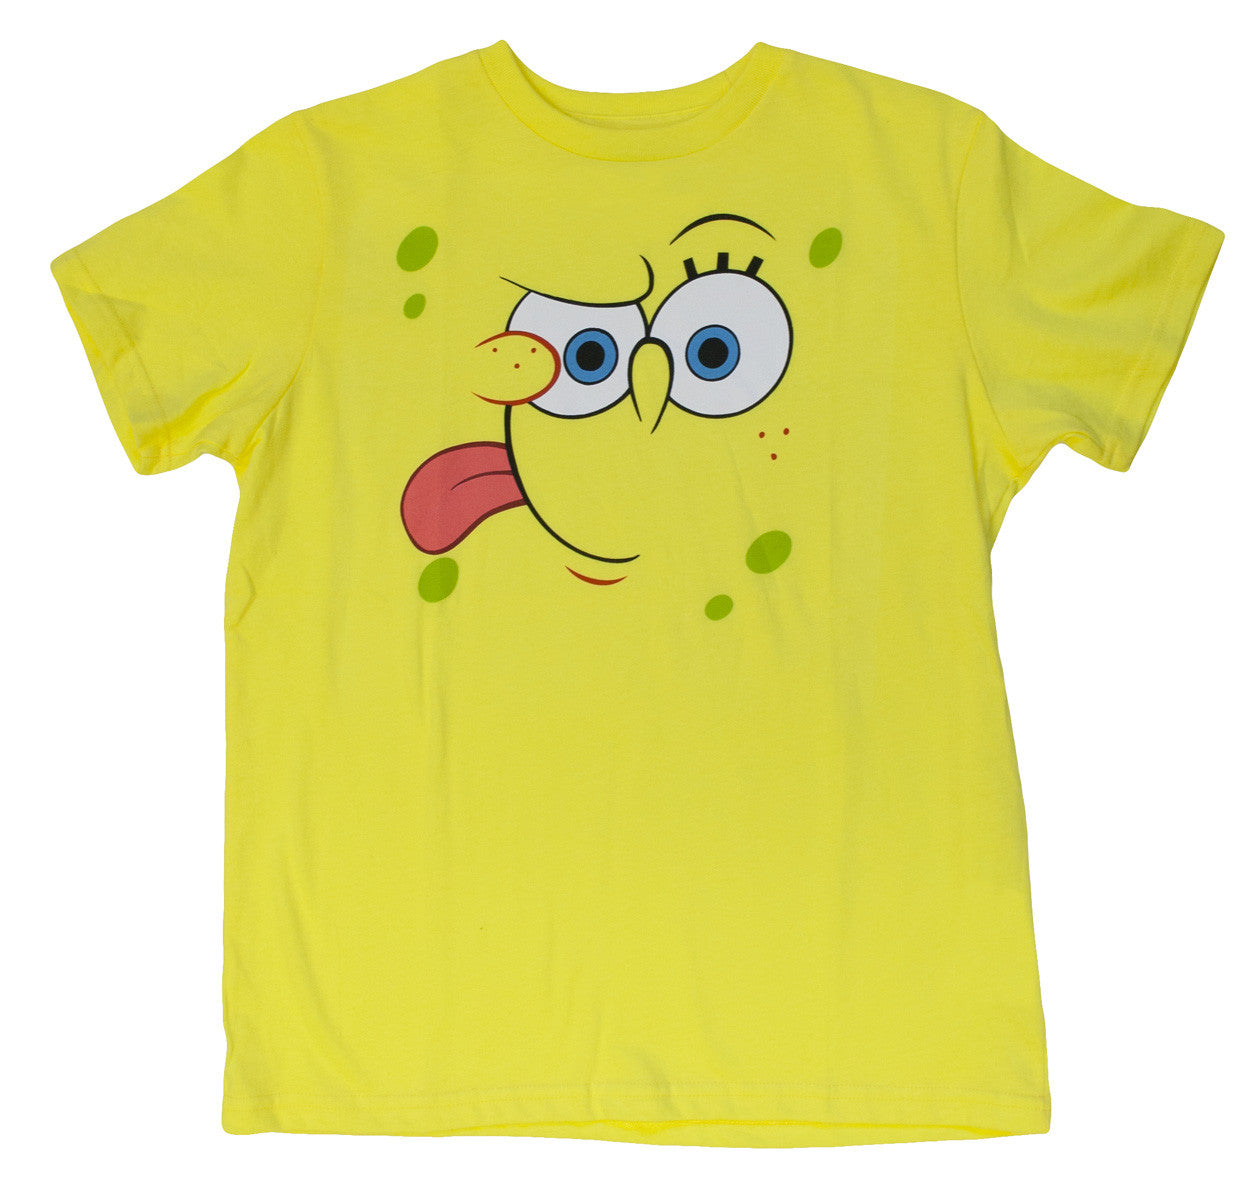 SpongeBob SquarePants Big Face t-shirt